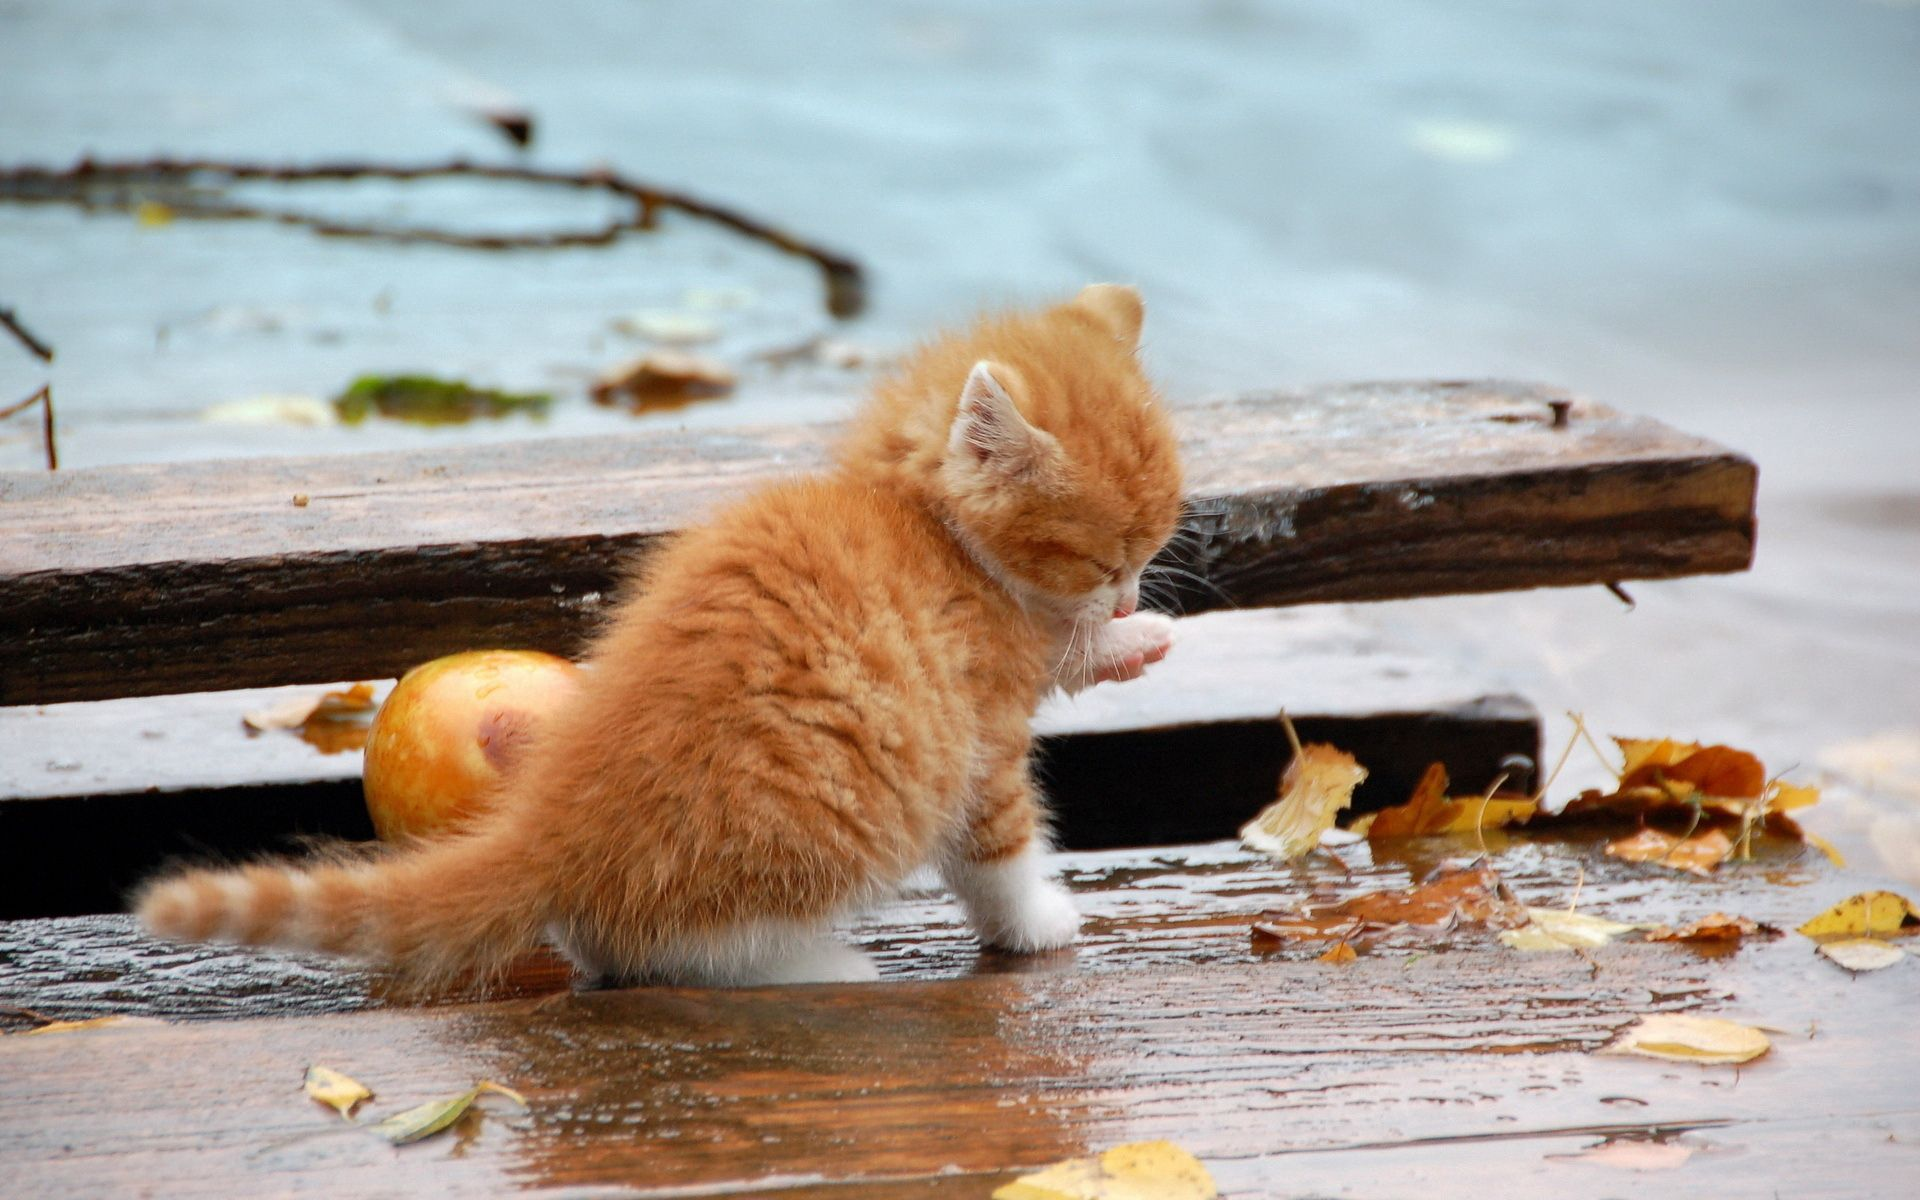 56150 download wallpaper Animals, Kitty, Kitten, Foliage, Autumn, Fallen, Paw, Wash Up, Wash screensavers and pictures for free